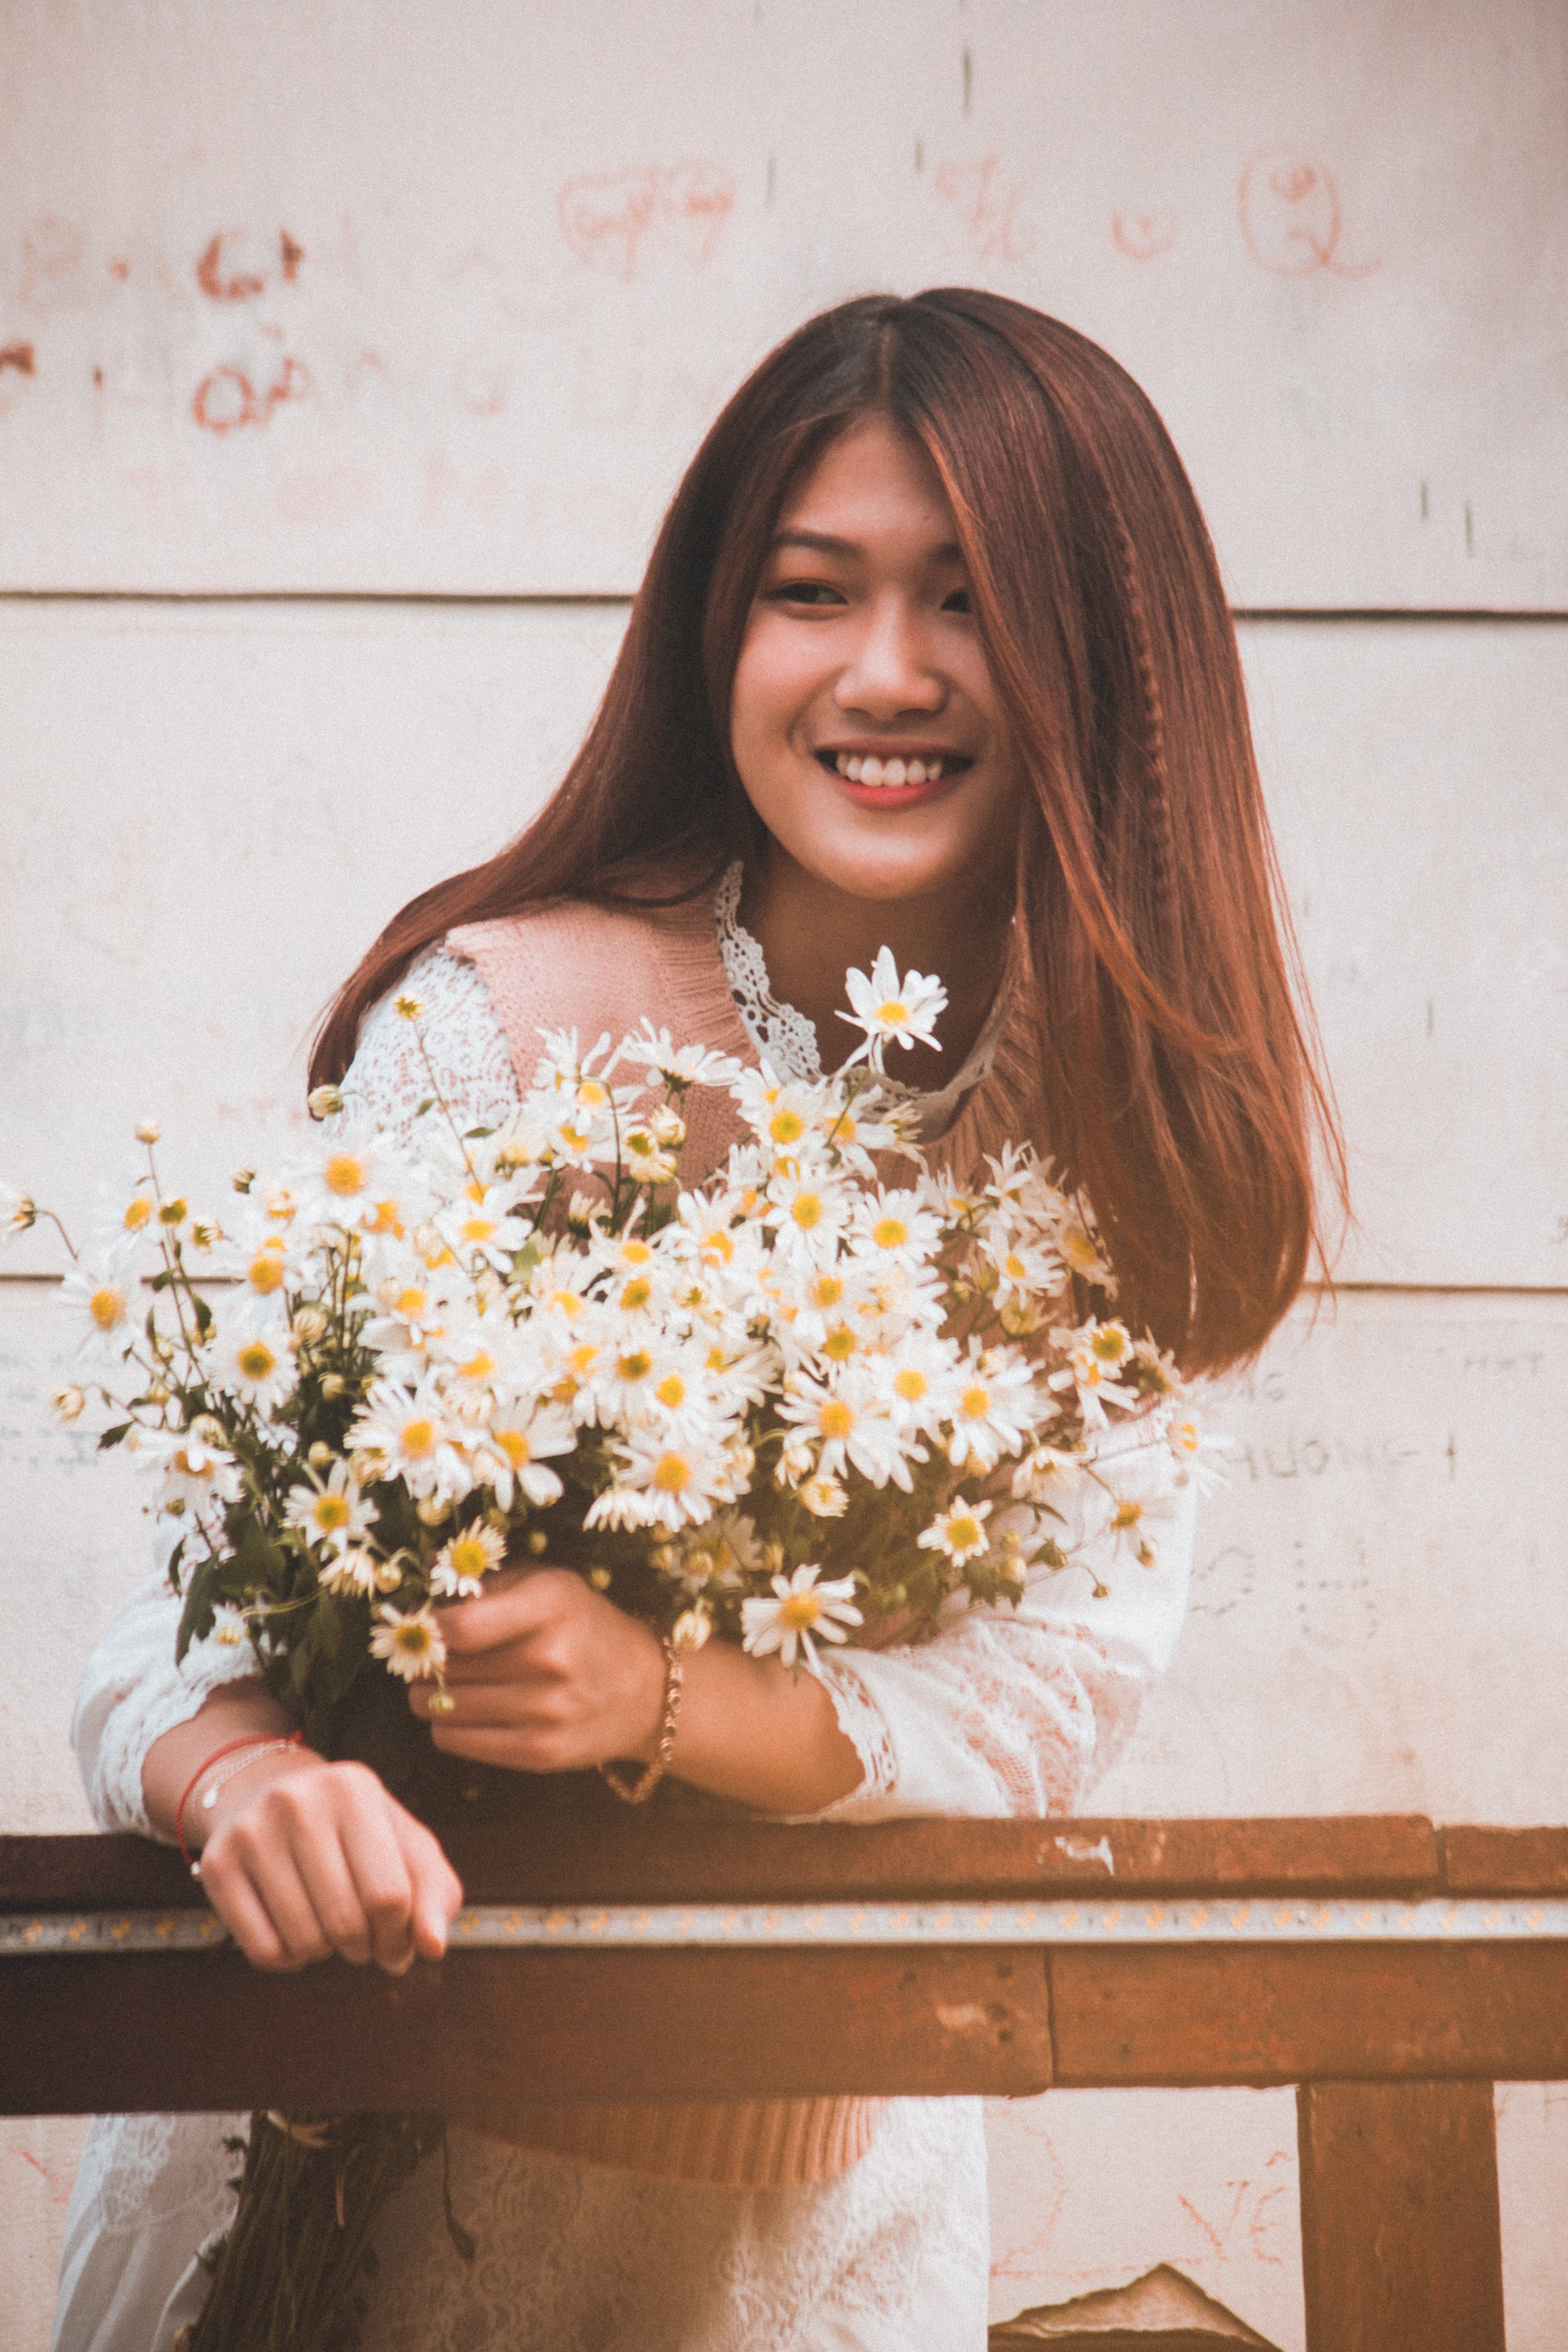 Photo of Smiling Woman Wearing White Long-sleeved Dress Holding White Daisy Bouquet